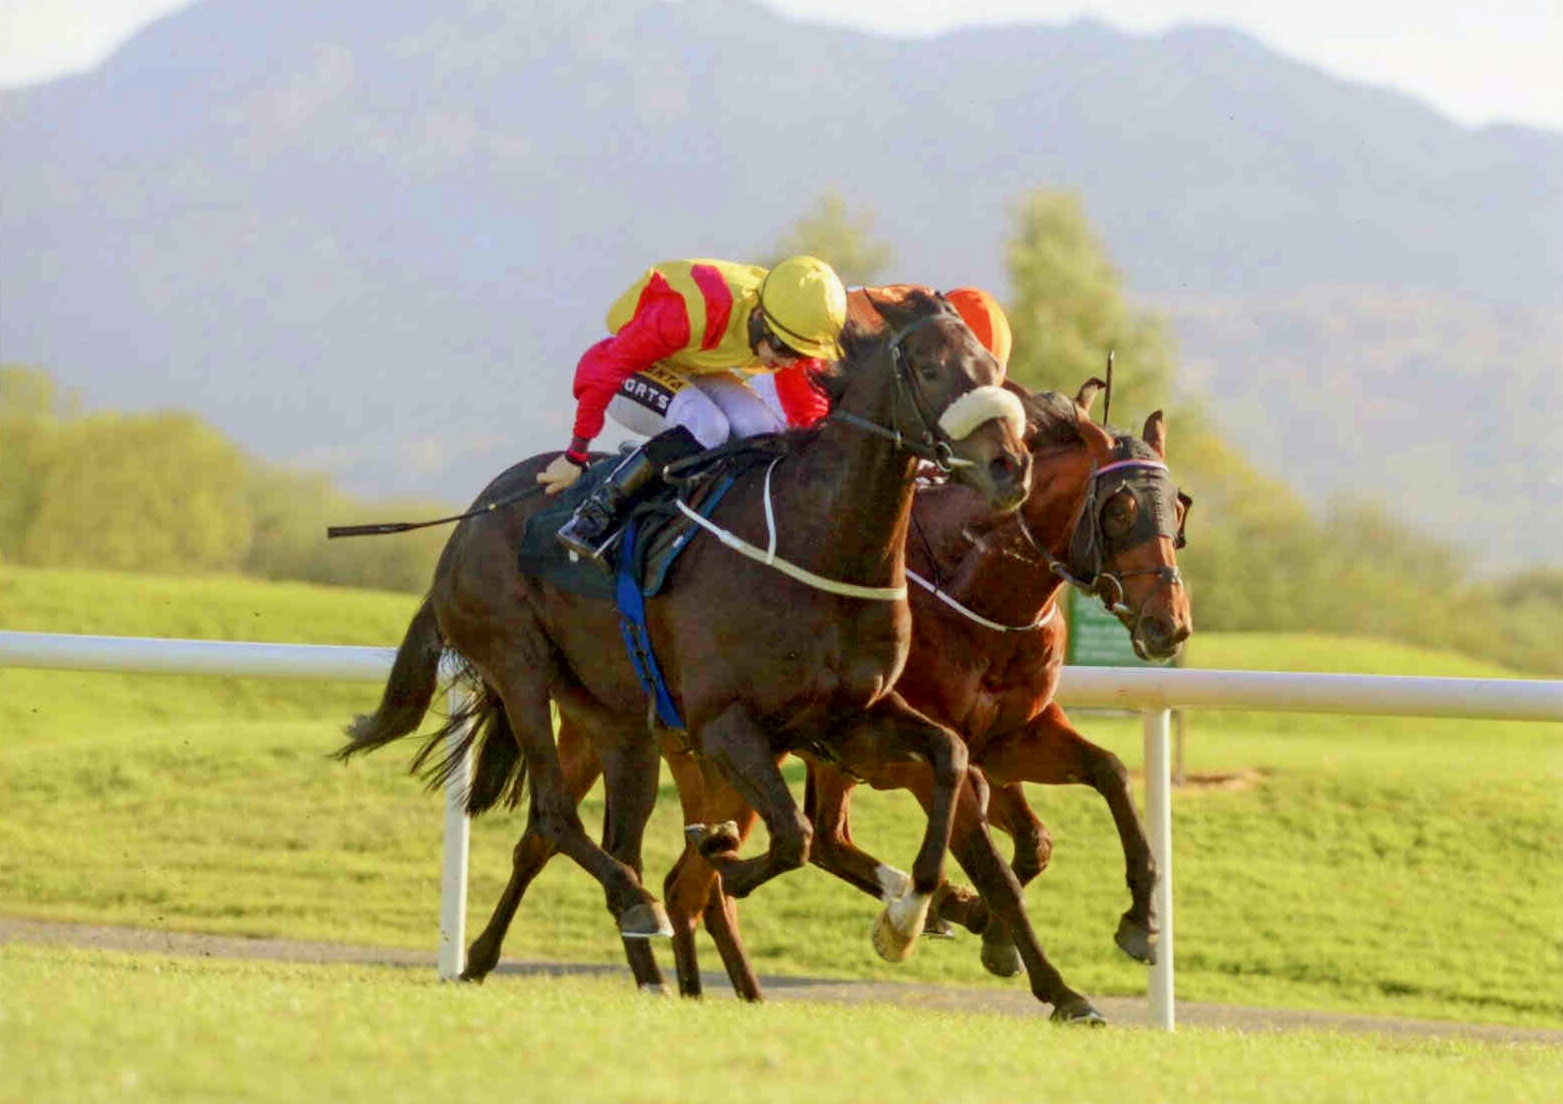 BERTIE LE BELGE starts his 3yo campaign off with a win at Killarney on May 12th 2015